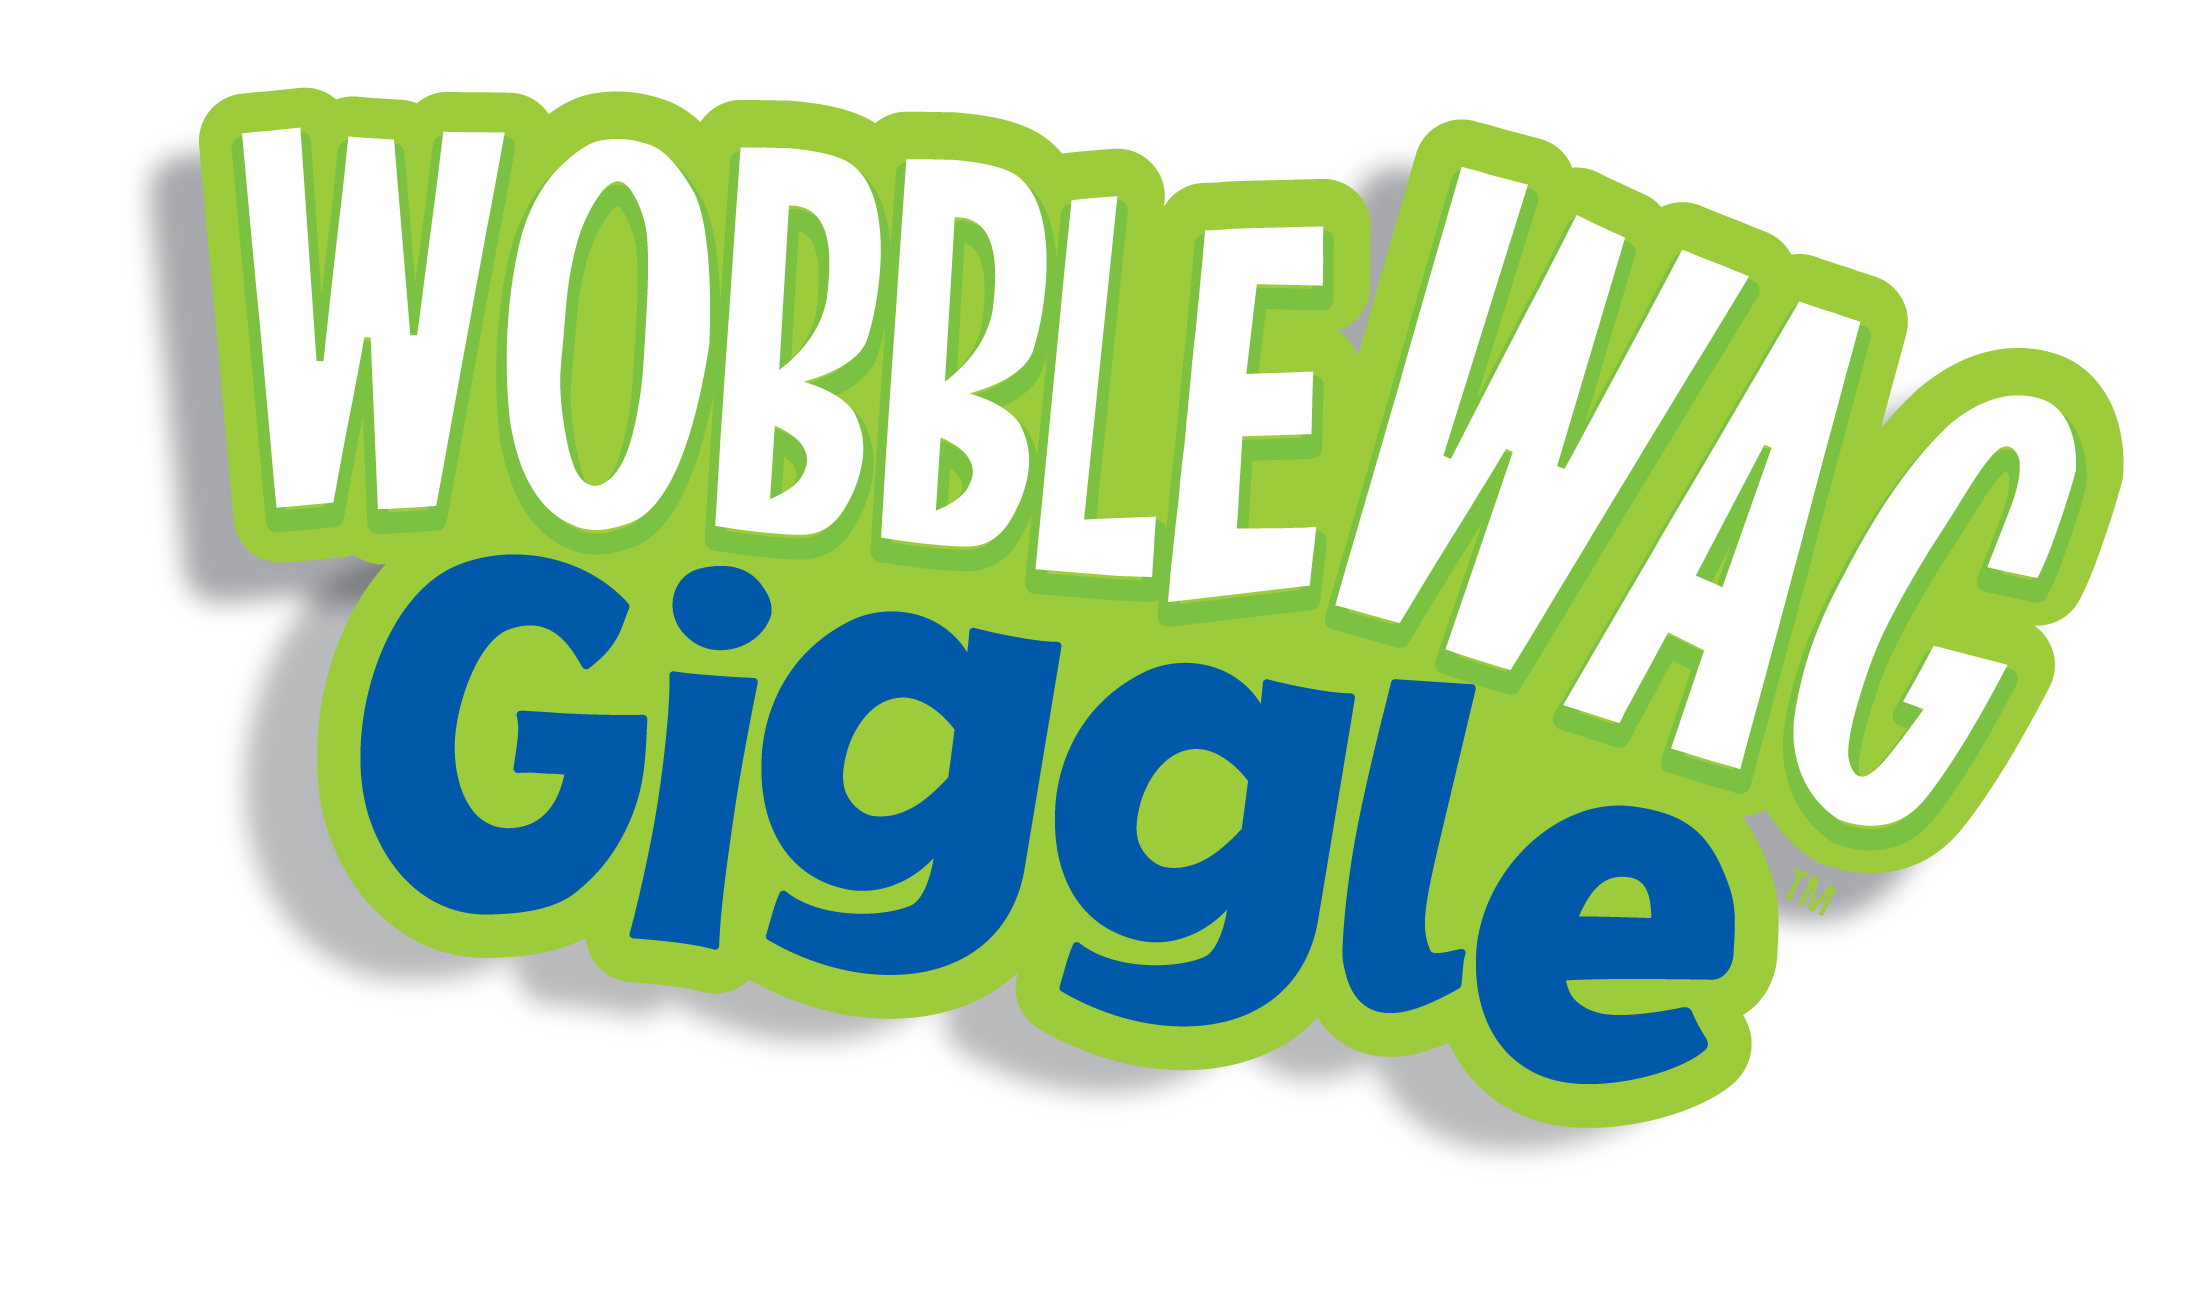 Wobble Wag Giggle logo.png